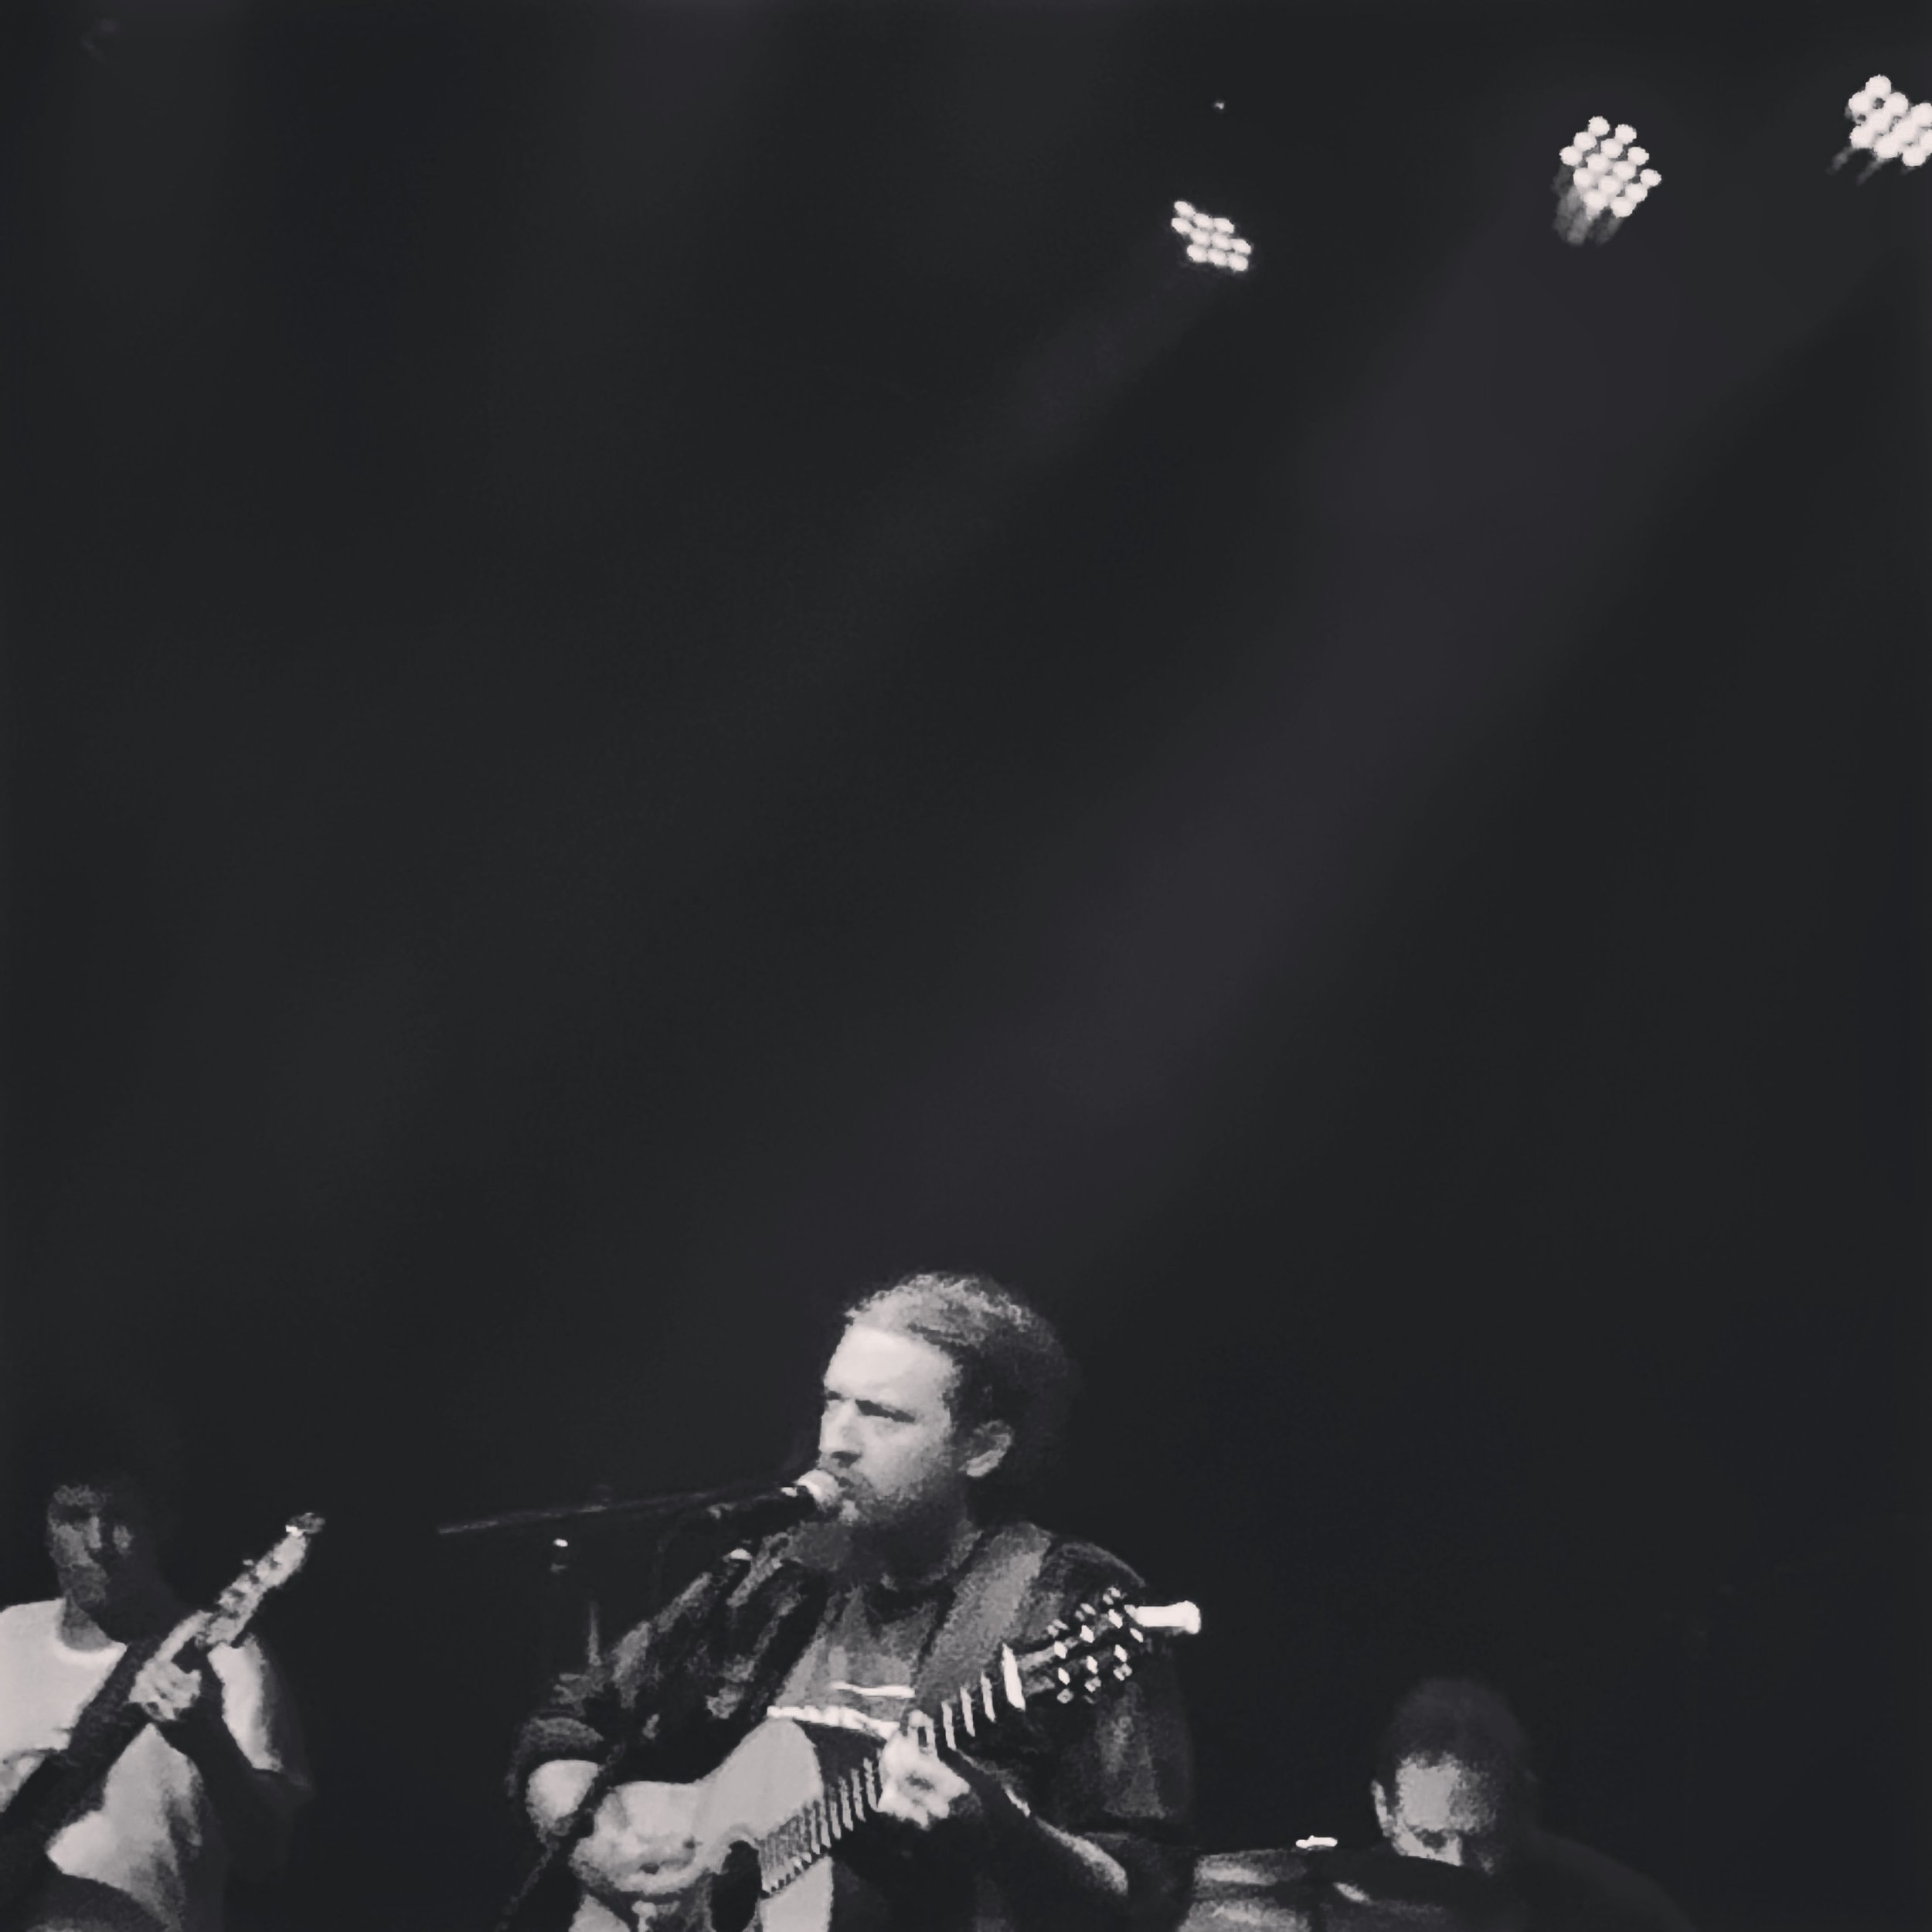 """#4 tyler childers - Headliners Music Hall - August 18, 2018""""Feathered Indians""""The grassroots evolution of Tyler Childers has led to a hard-hitting non-stop tour that's visited every major American city at least twice in the past year. It's astonishing what he's accomplished in the past year: sold-out shows, an Americana award, and climbing album sales. """"Feathered Indians"""" is the long-awaited moment that propels the crowd's enthusiasm even more, turning the clubs and theaters into a sing-along joint."""